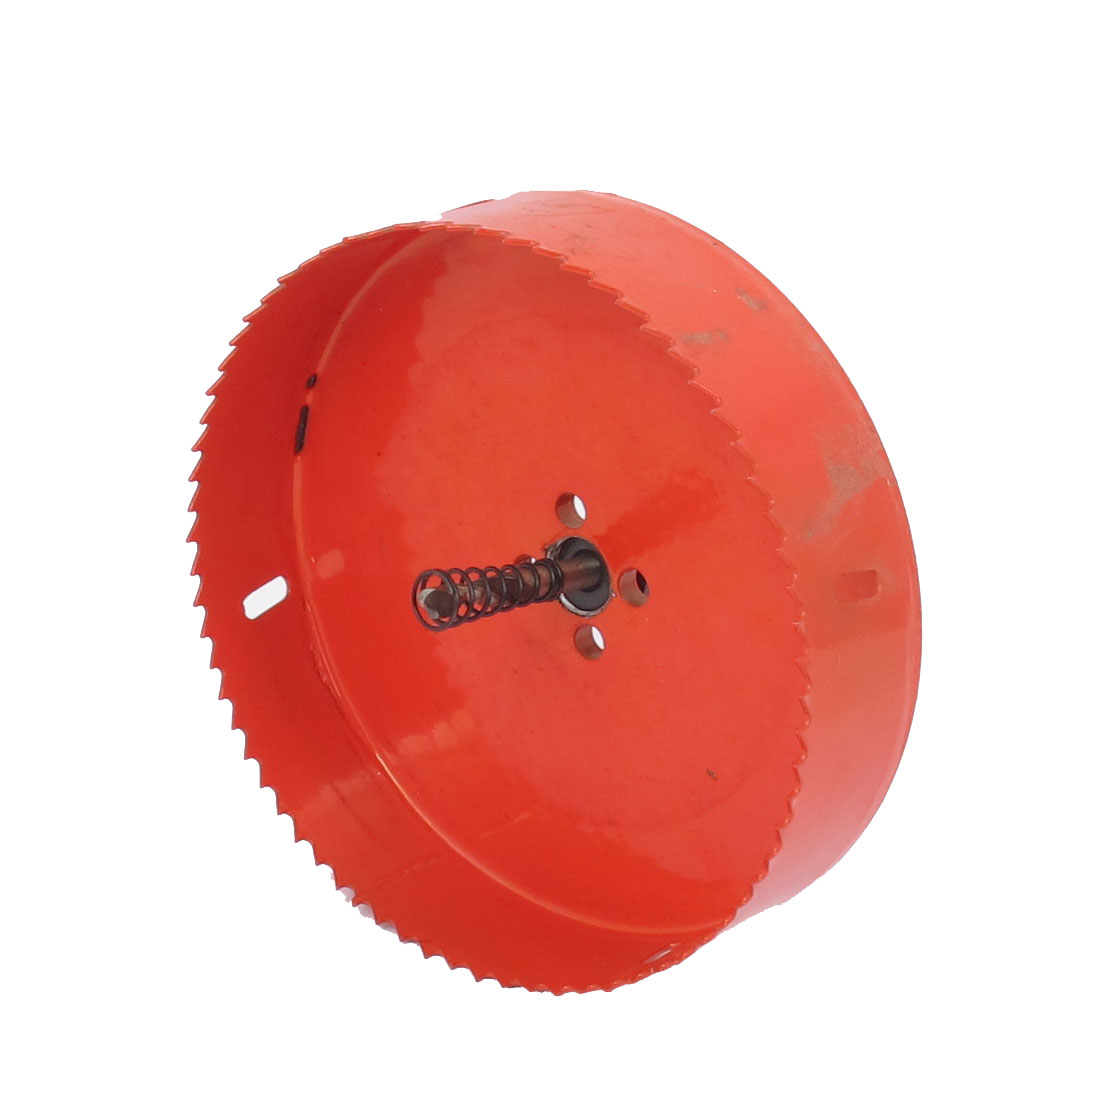 6mm Drill Bit 145mm Cutting Diameter Hole Saw Red for Drilling Wood